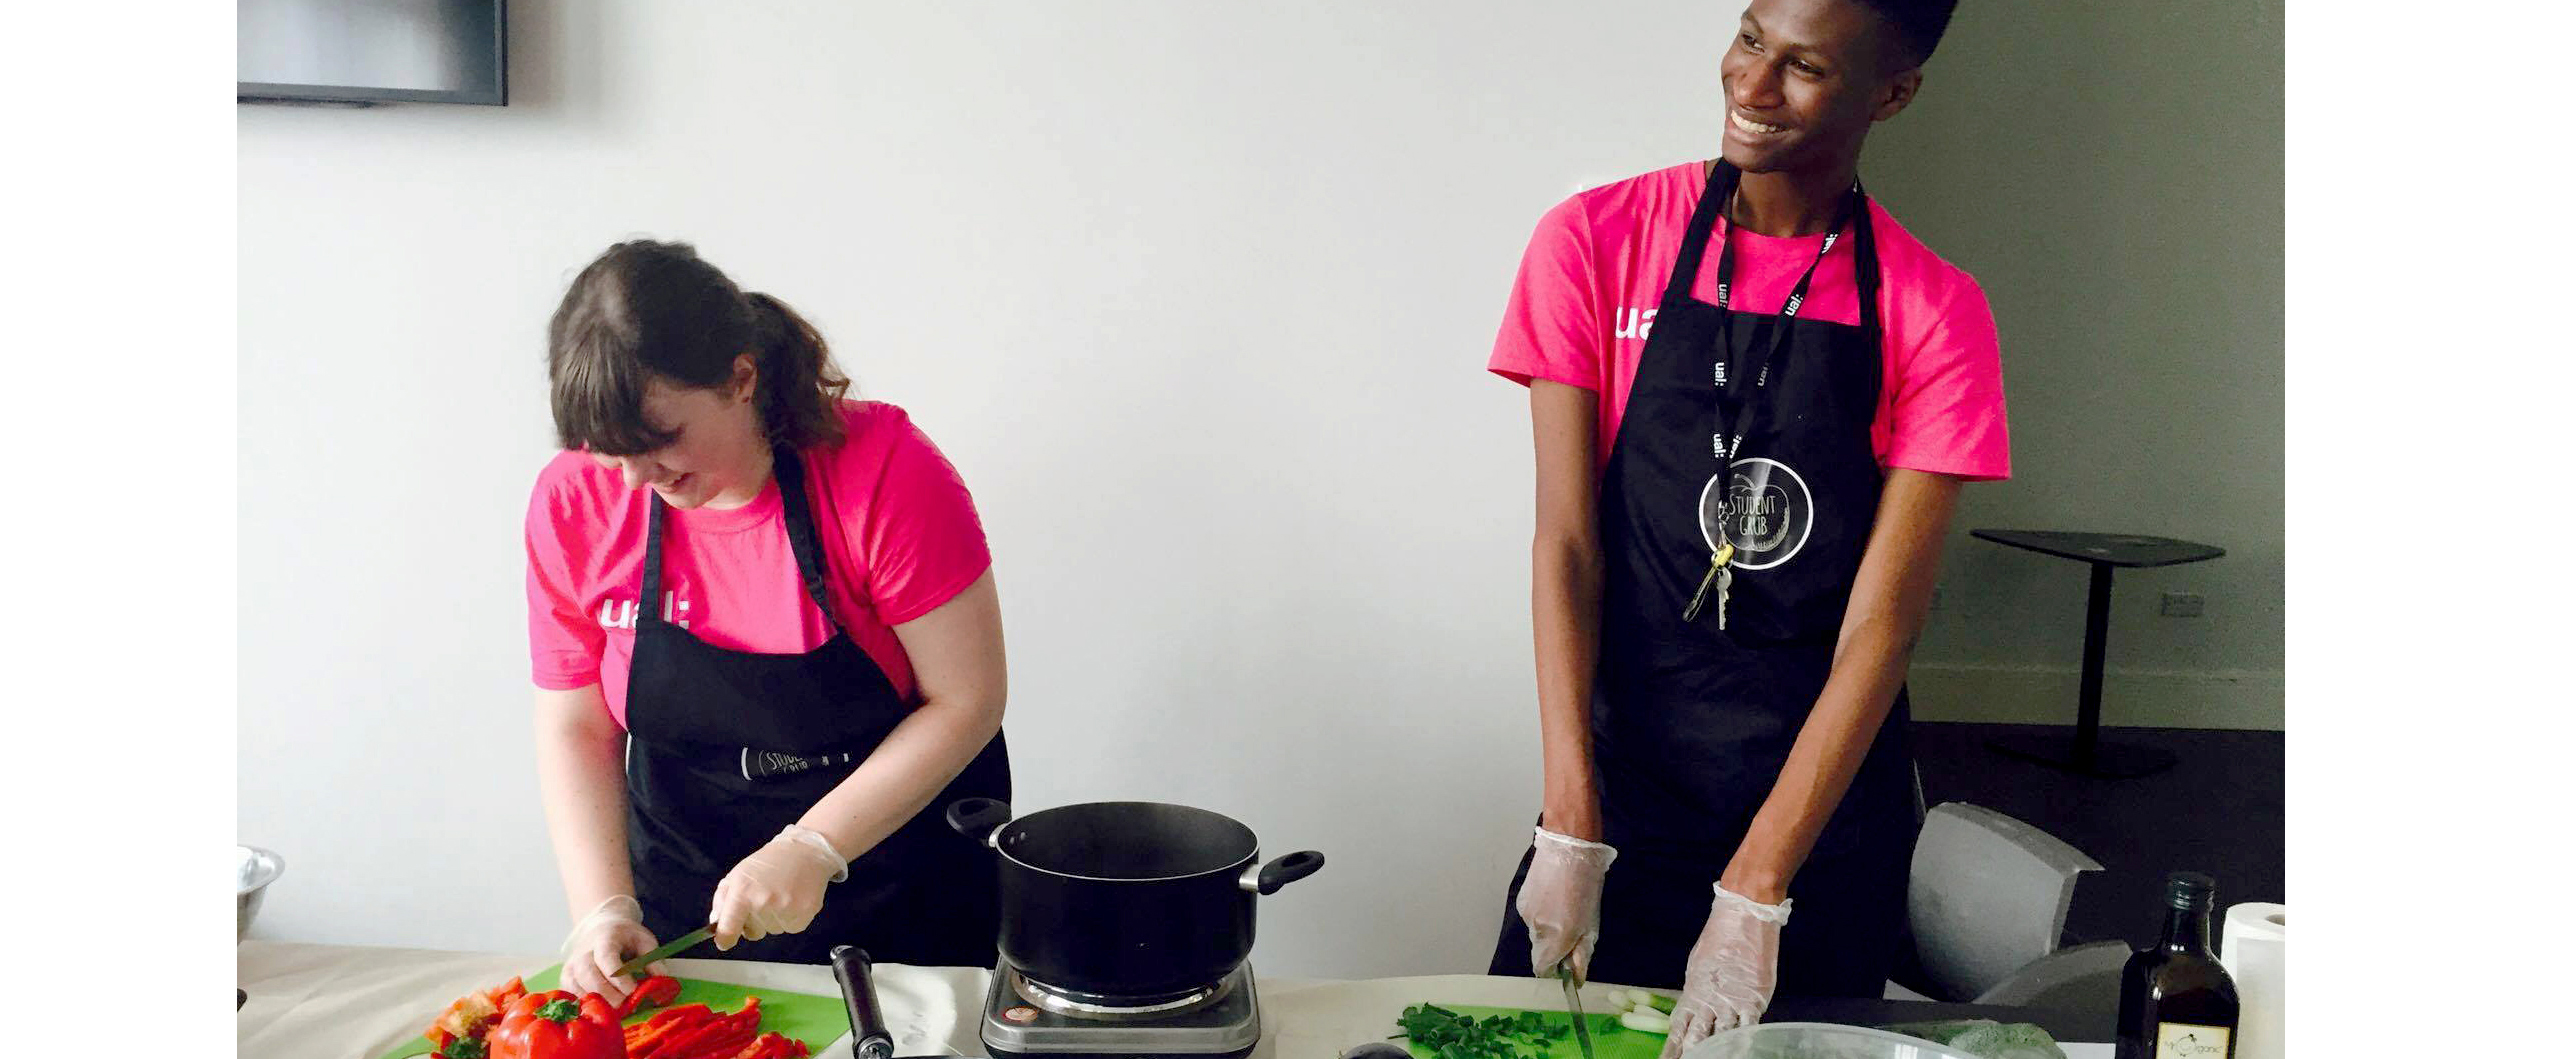 a man and woman preparing food in a kitchen